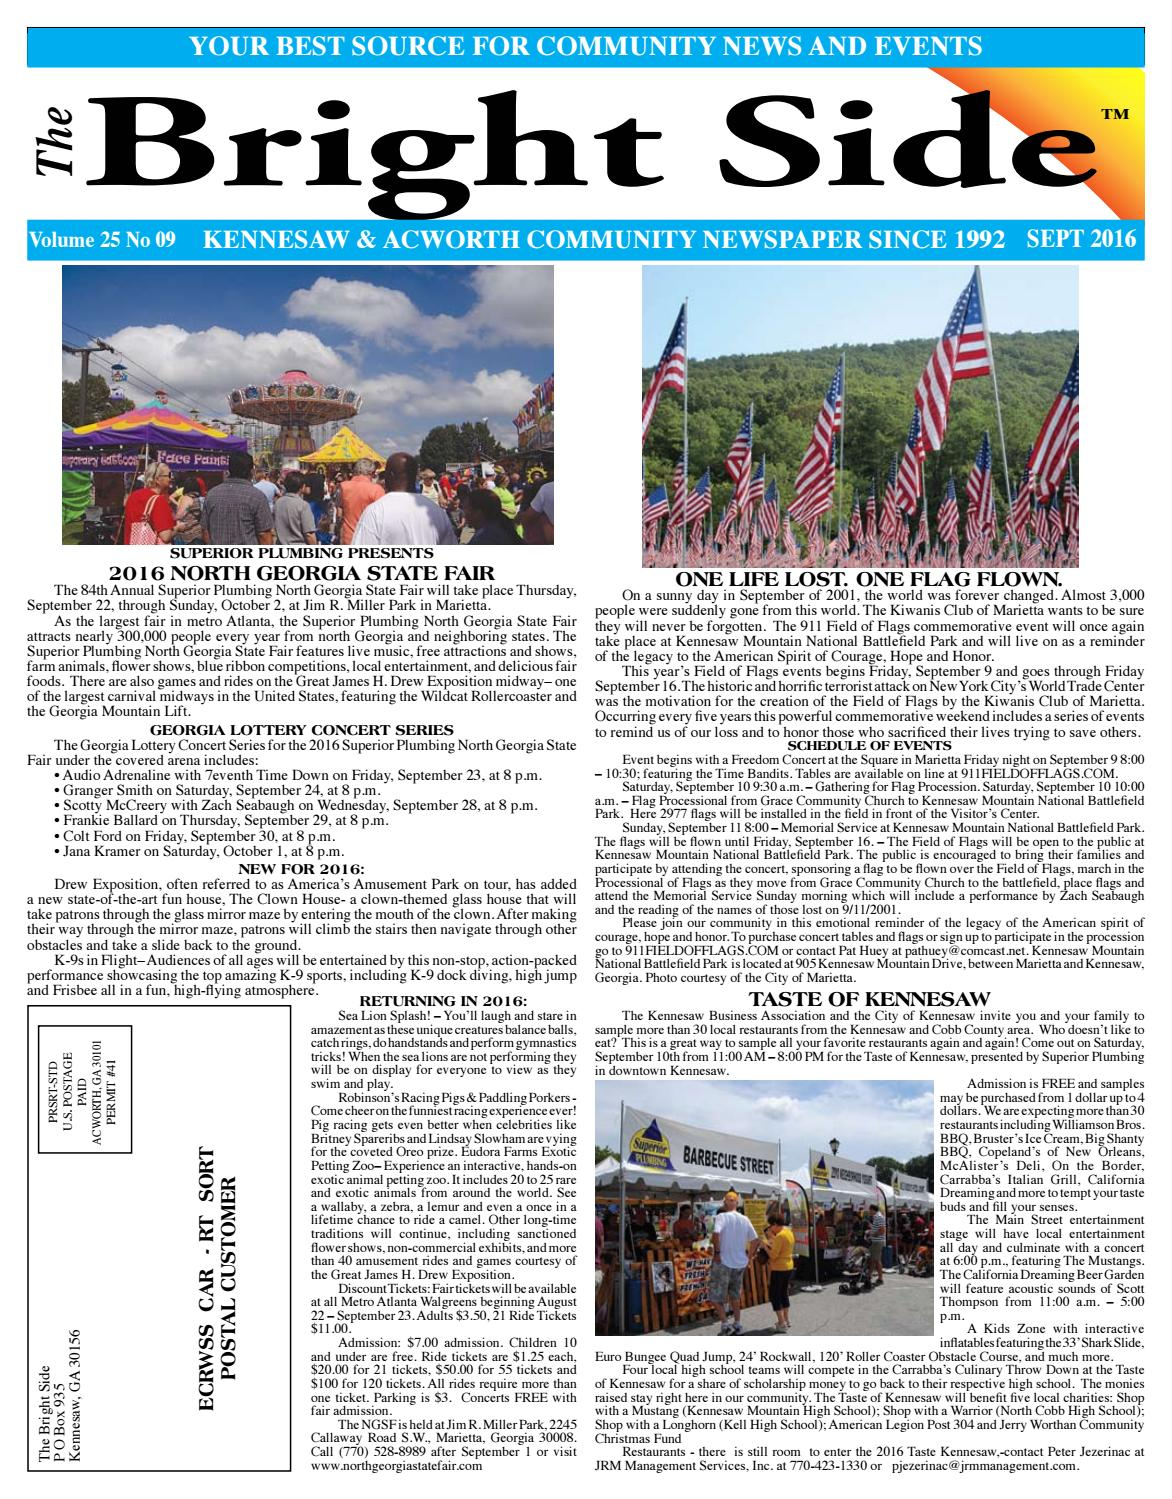 September 2016 kennesawacworth newspaper for cobb county by carol september 2016 kennesawacworth newspaper for cobb county by carol grigsby thompson publisher of the bright side community newspapers issuu 1betcityfo Images